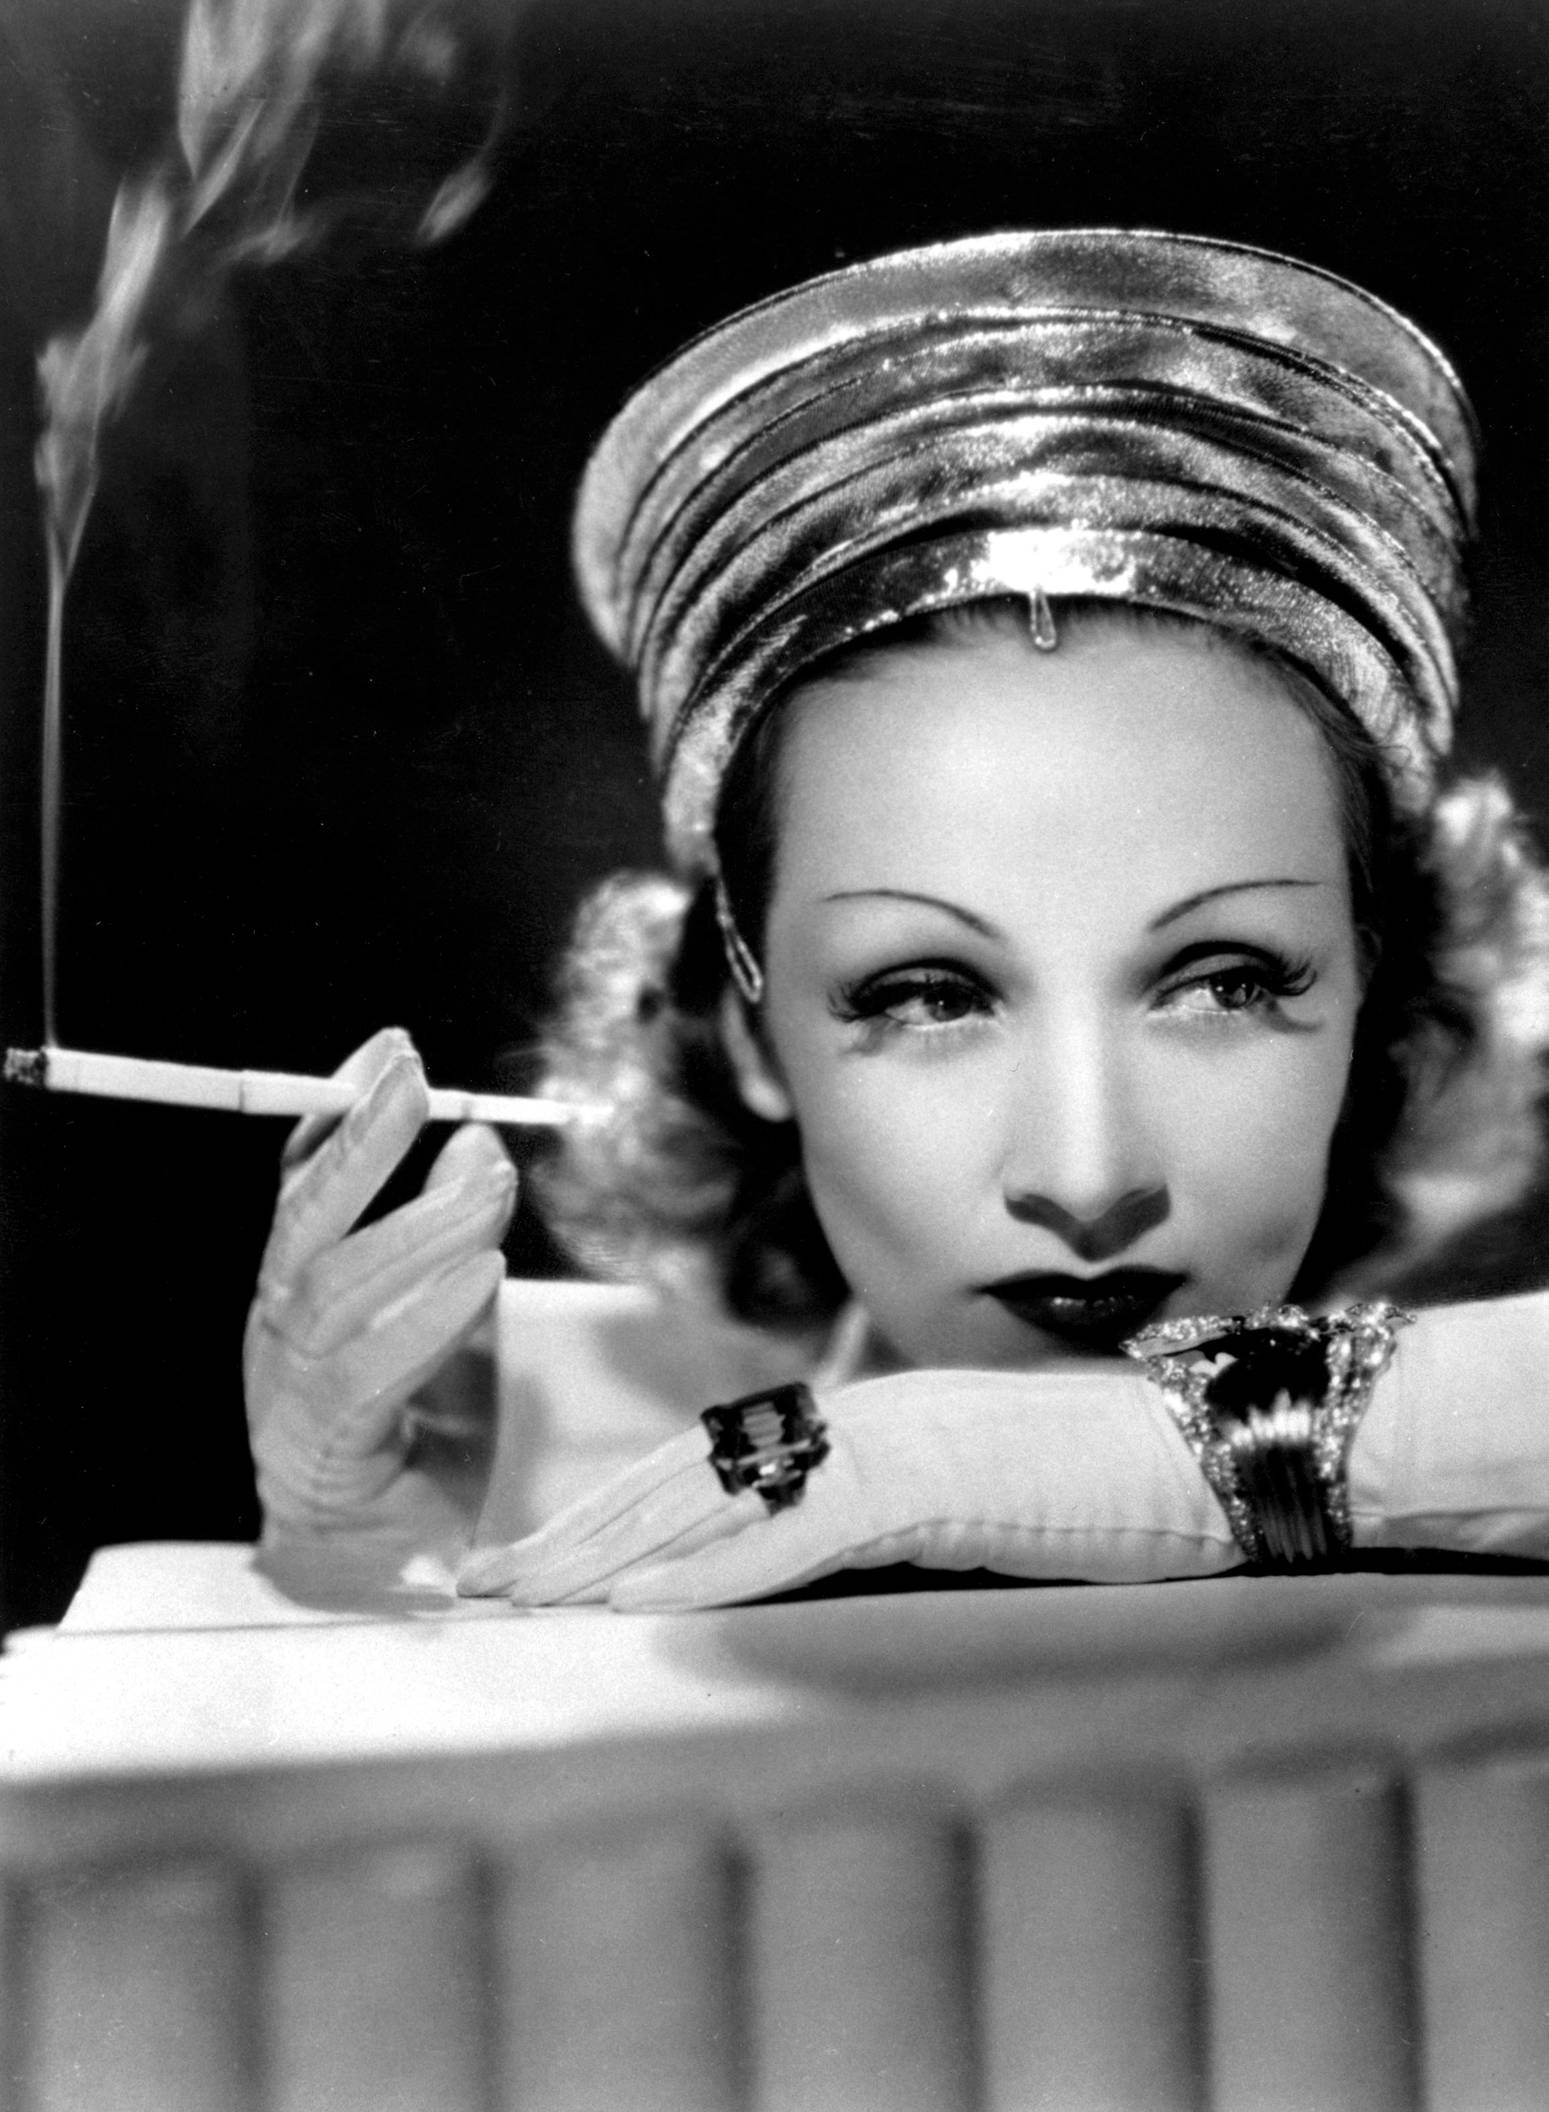 Marlene Dietrich images 5 from 10